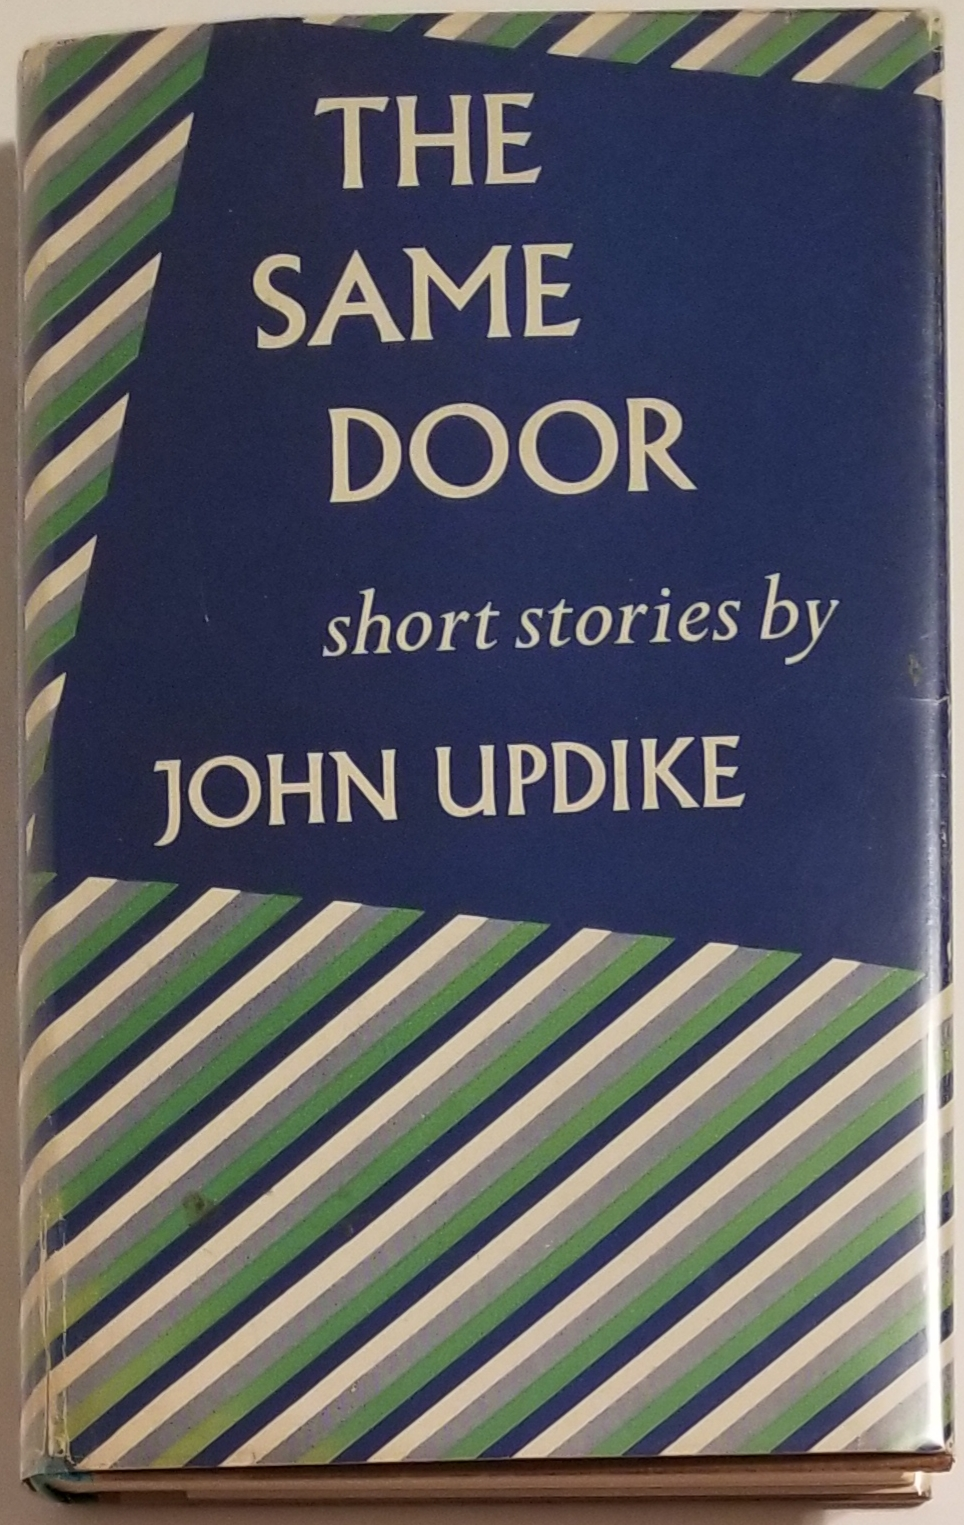 THE SAME DOOR. John Updike.